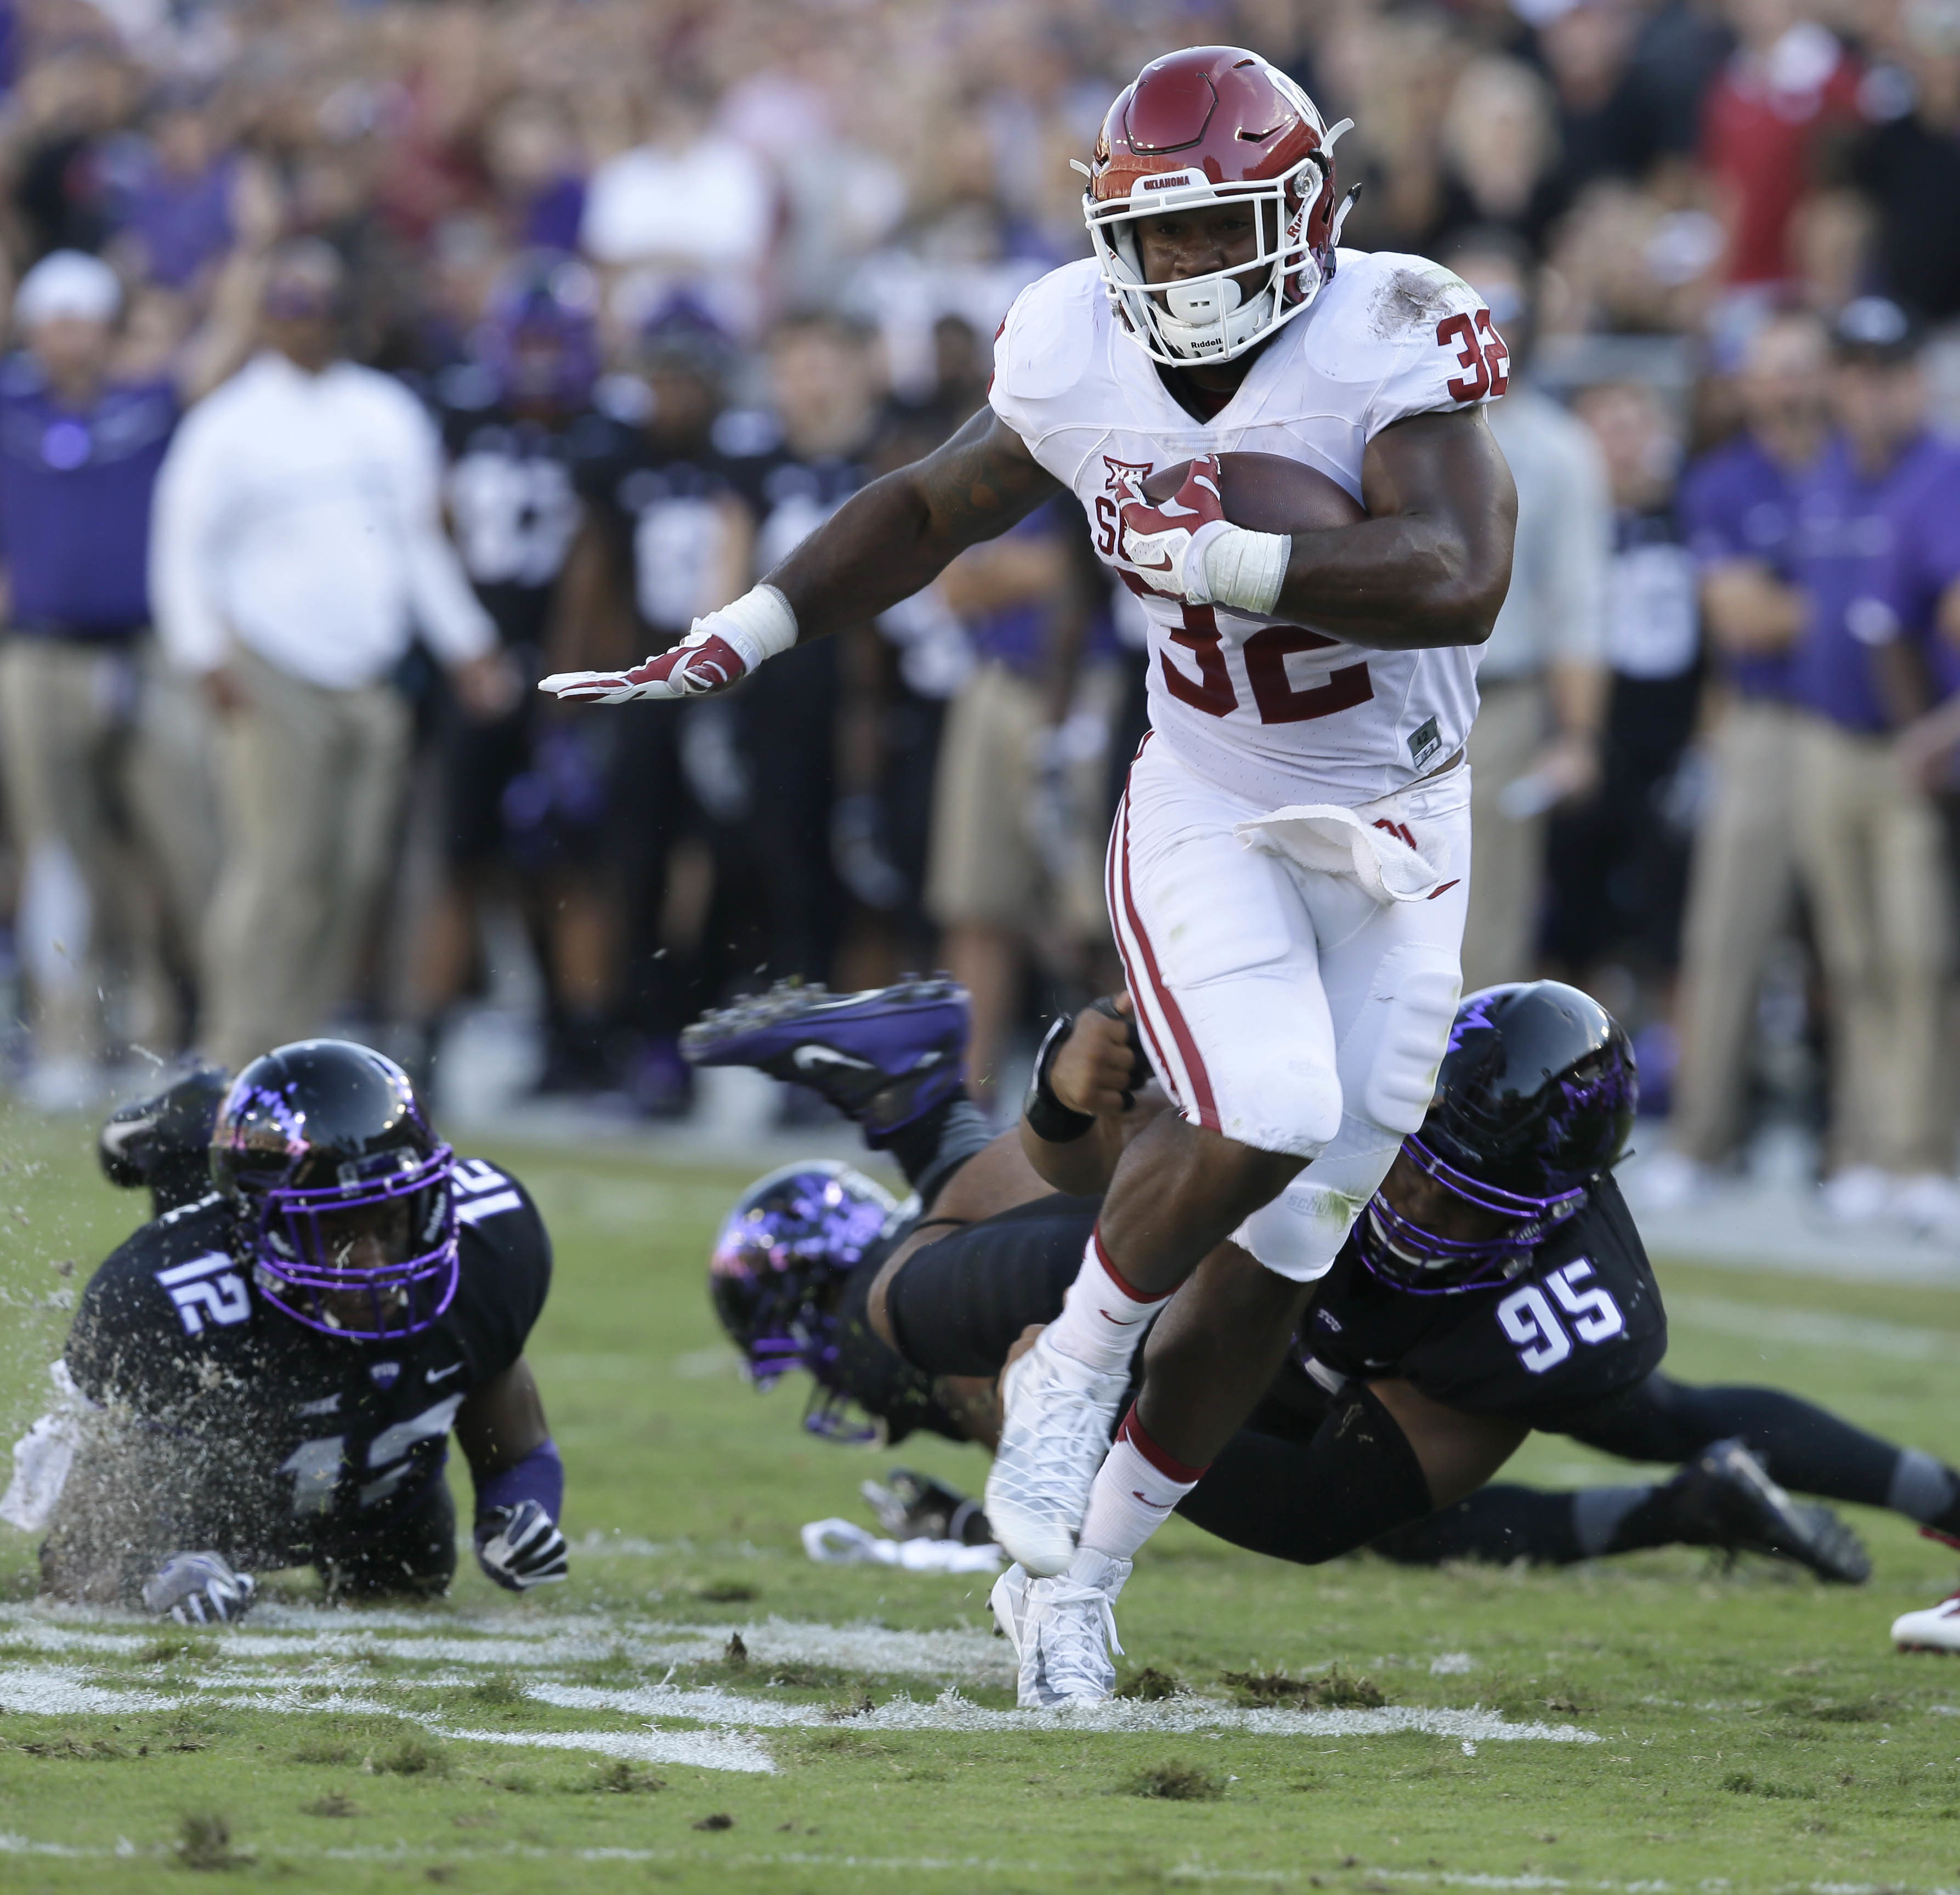 FILE - In this Oct. 1, 2016, file photo, Oklahoma running back Samaje Perine (32) runs with the ball during the first half of an NCAA college football game against TCU, in Fort Worth, Texas. Oklahoma running back Samaje Perine is expected to play Saturday